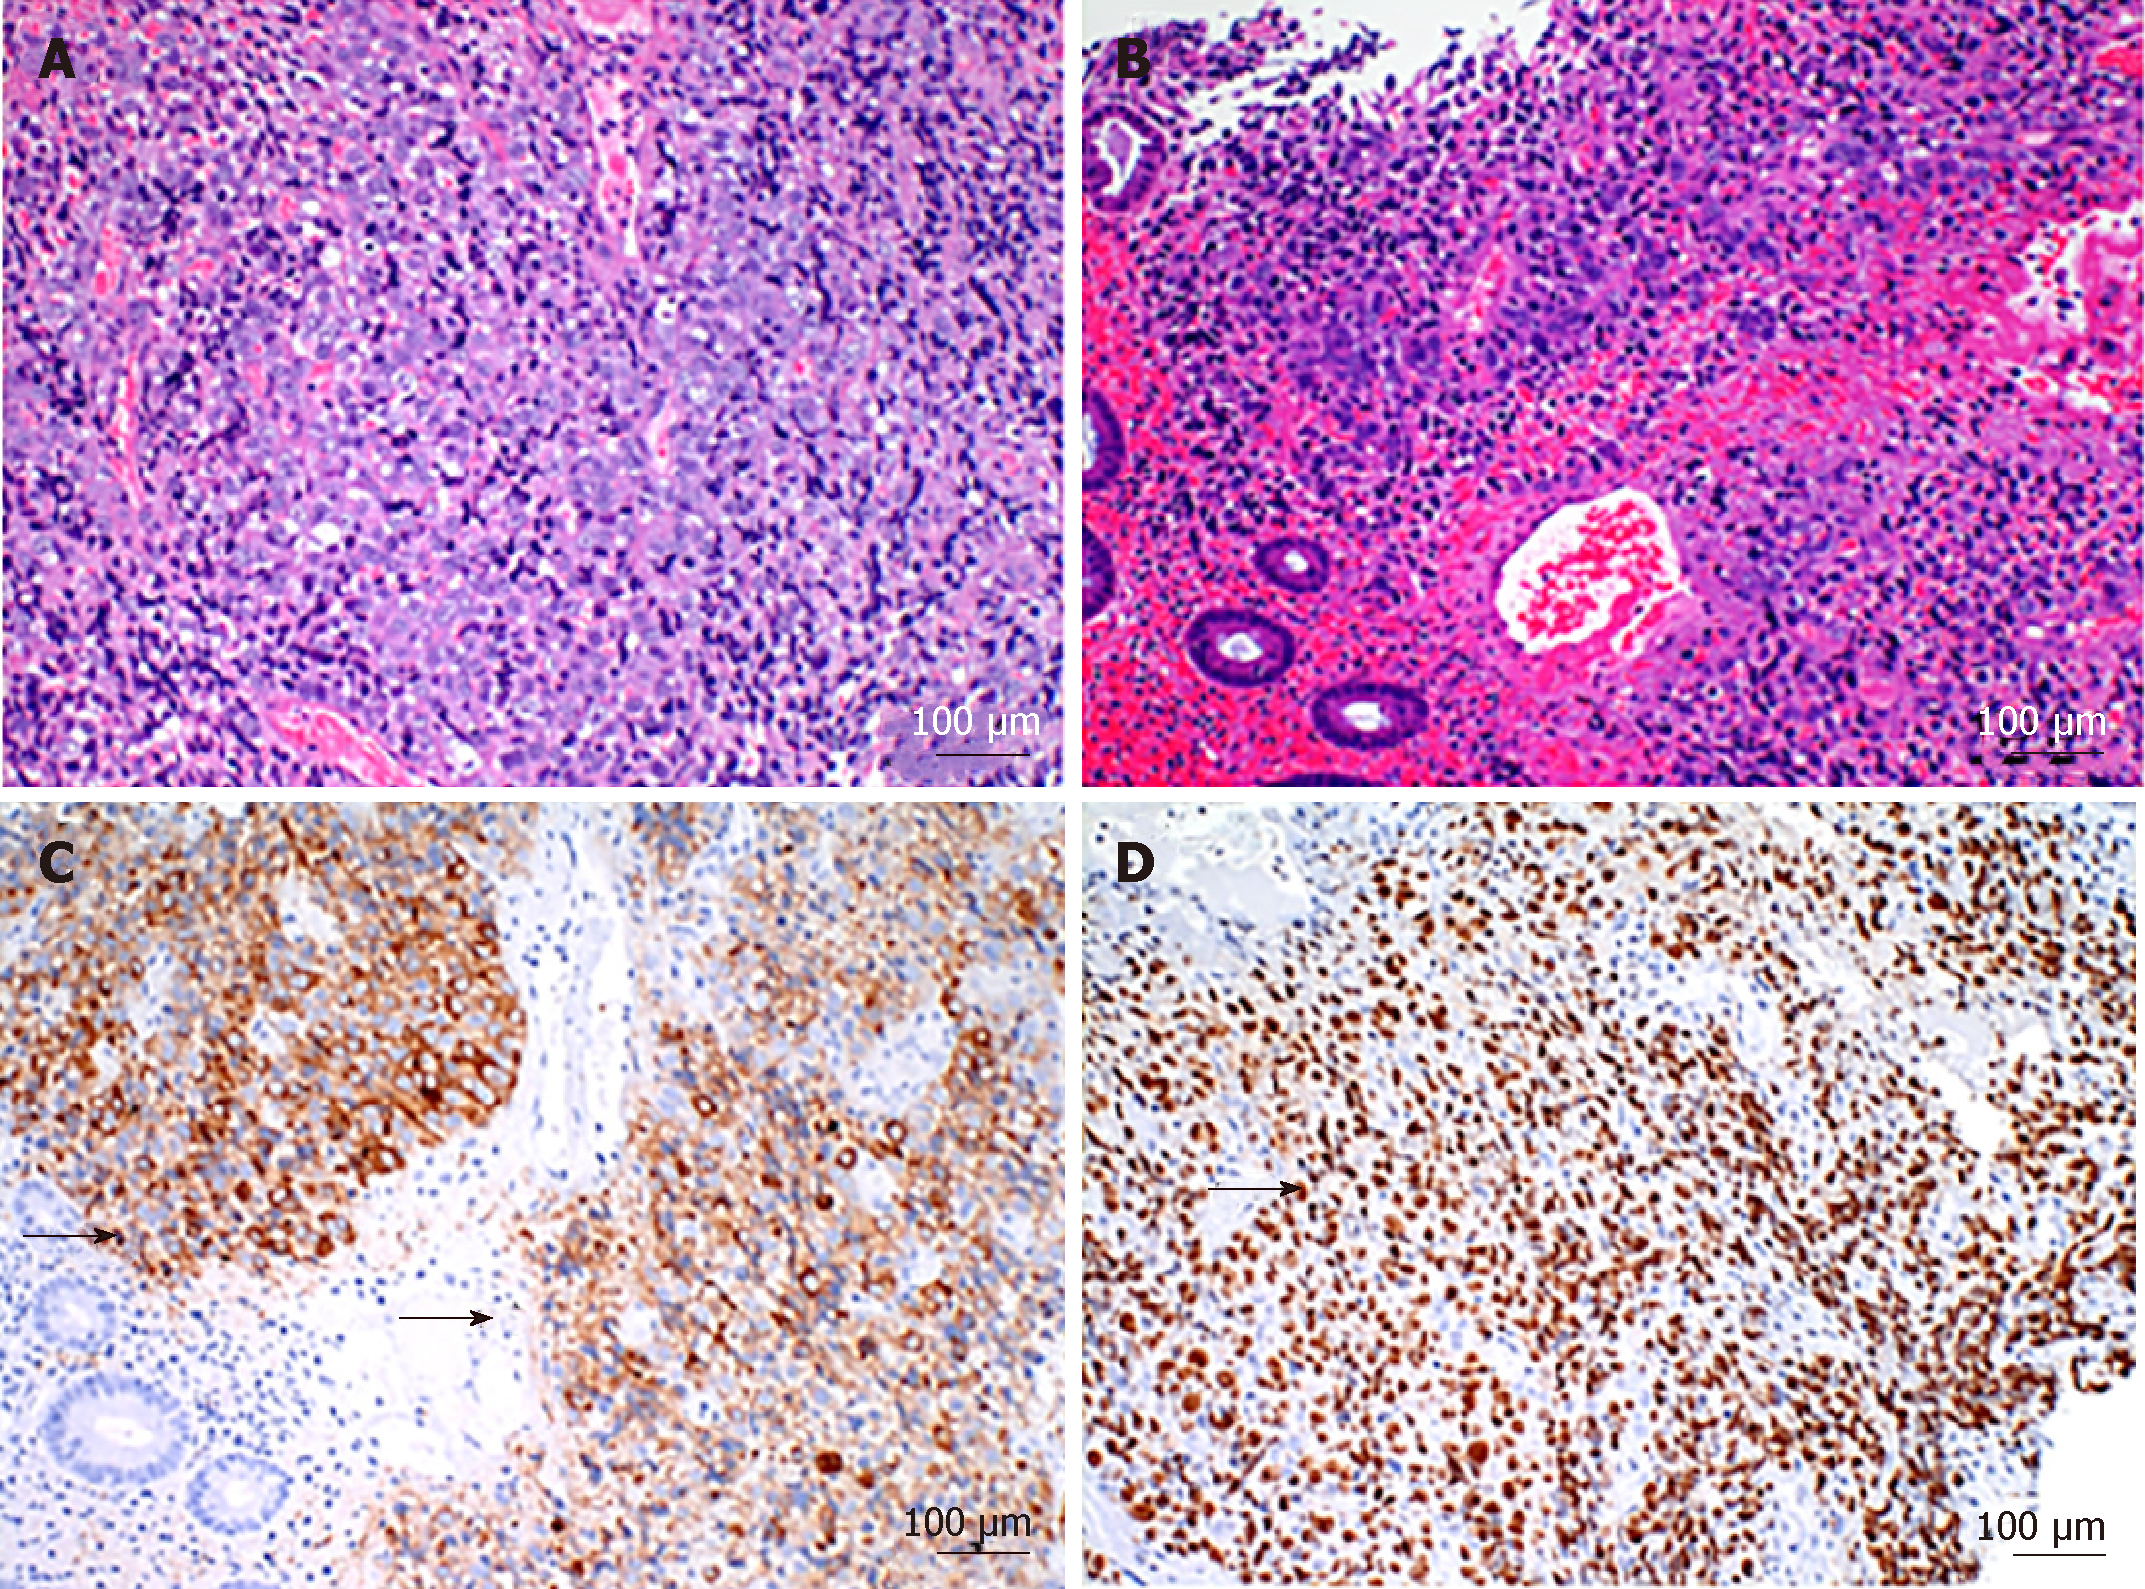 Colorectal Neuroendocrine Carcinoma A Case Report And Review Of The Literature